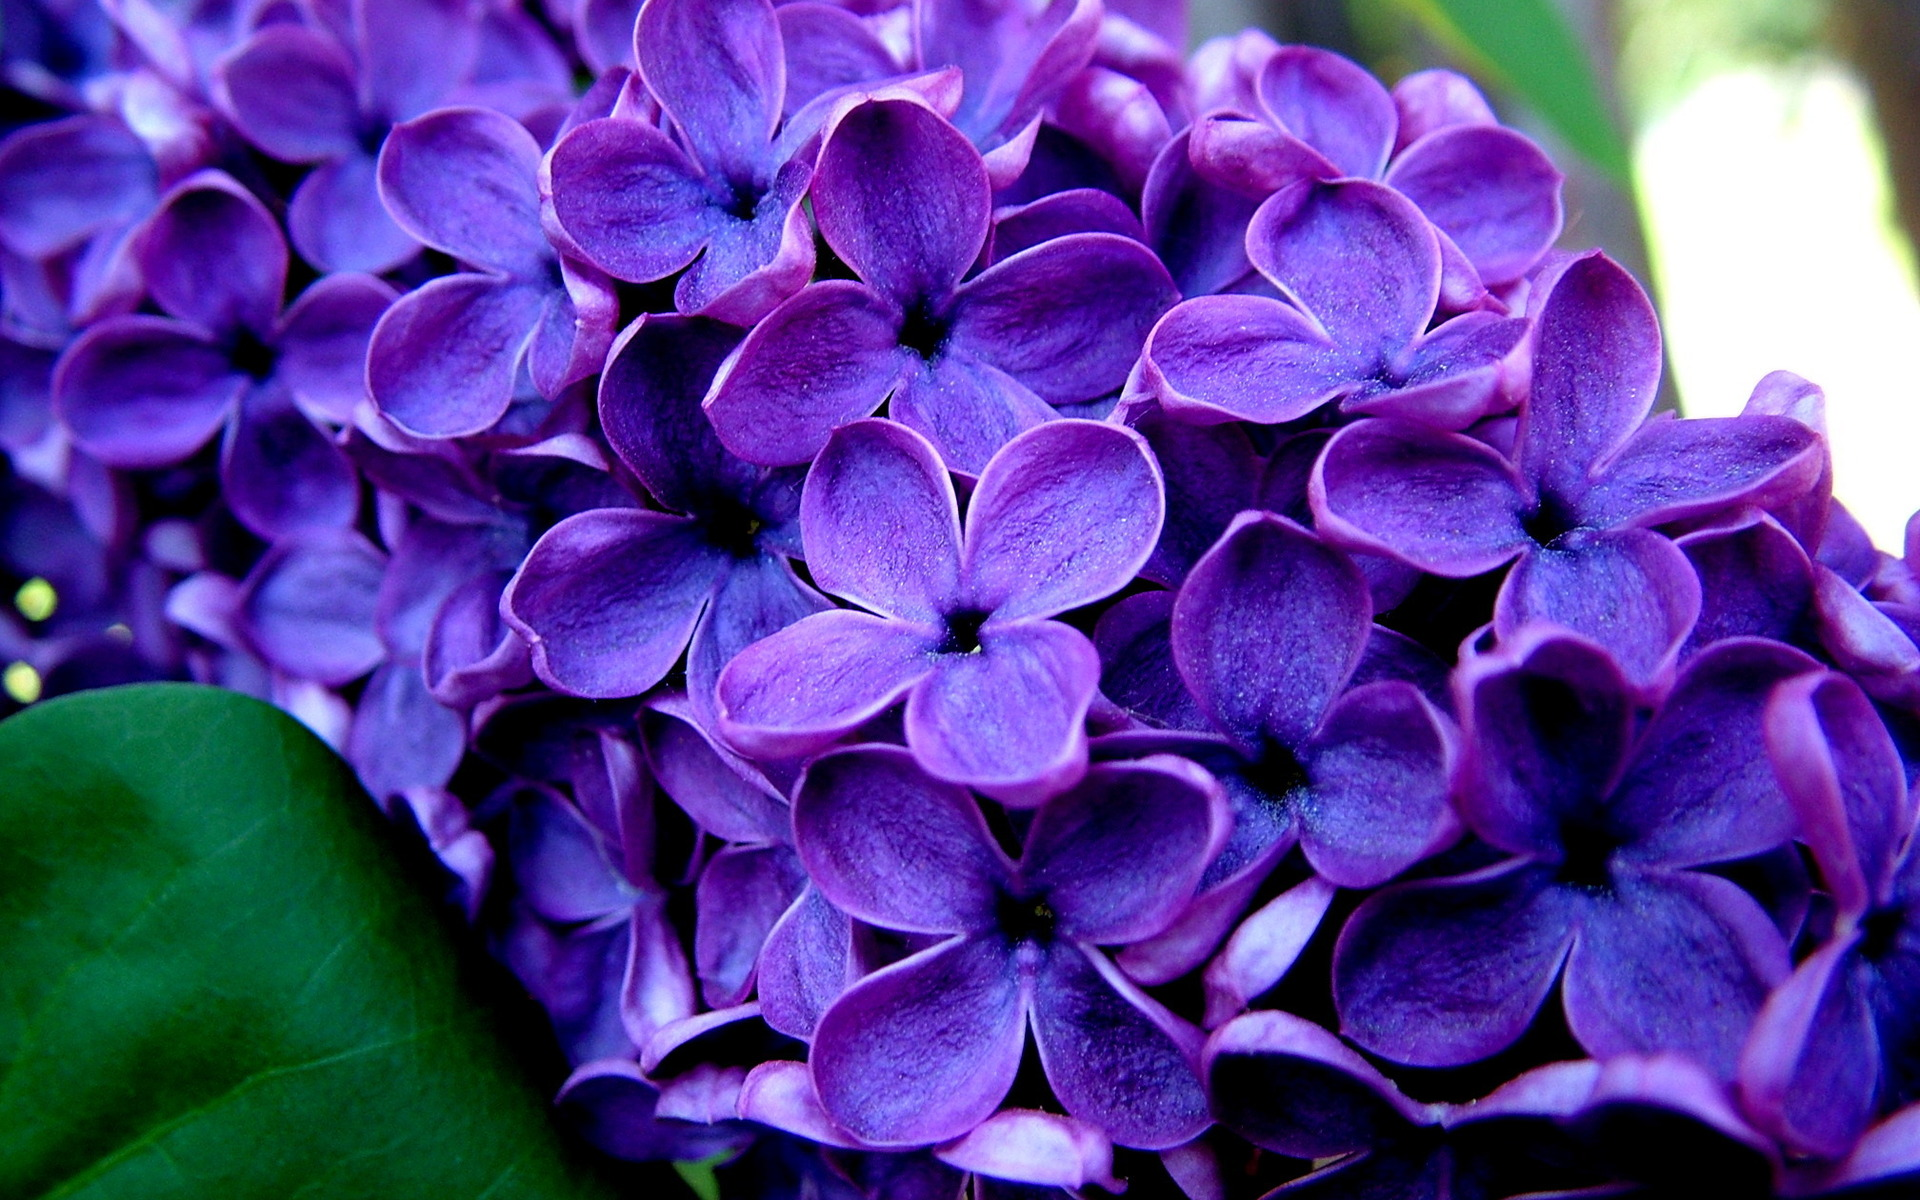 Gorgeous purple flower